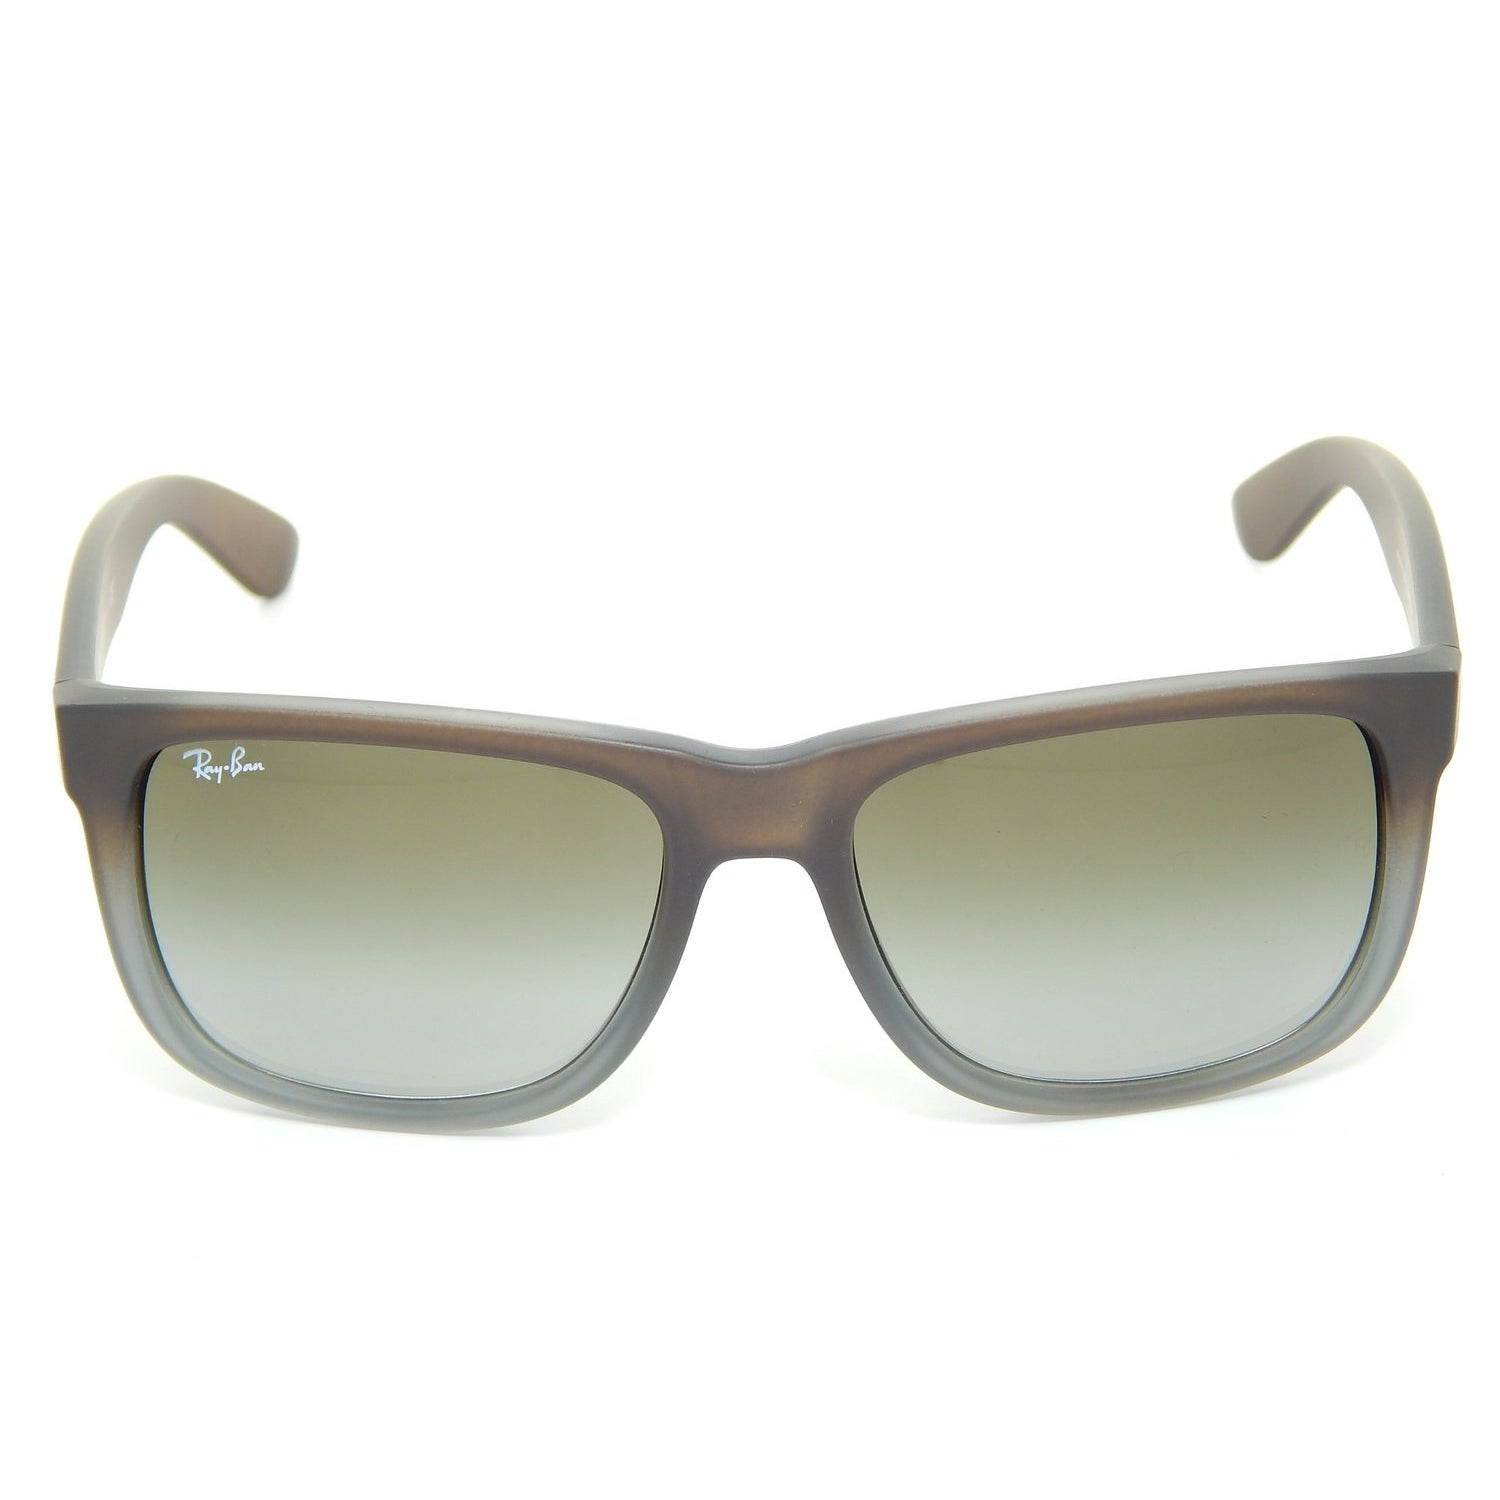 92623b99c7 Shop Ray-Ban RB4165 Justin Sunglasses 854 7Z - 55MM - Free Shipping Today -  Overstock.com - 10328306